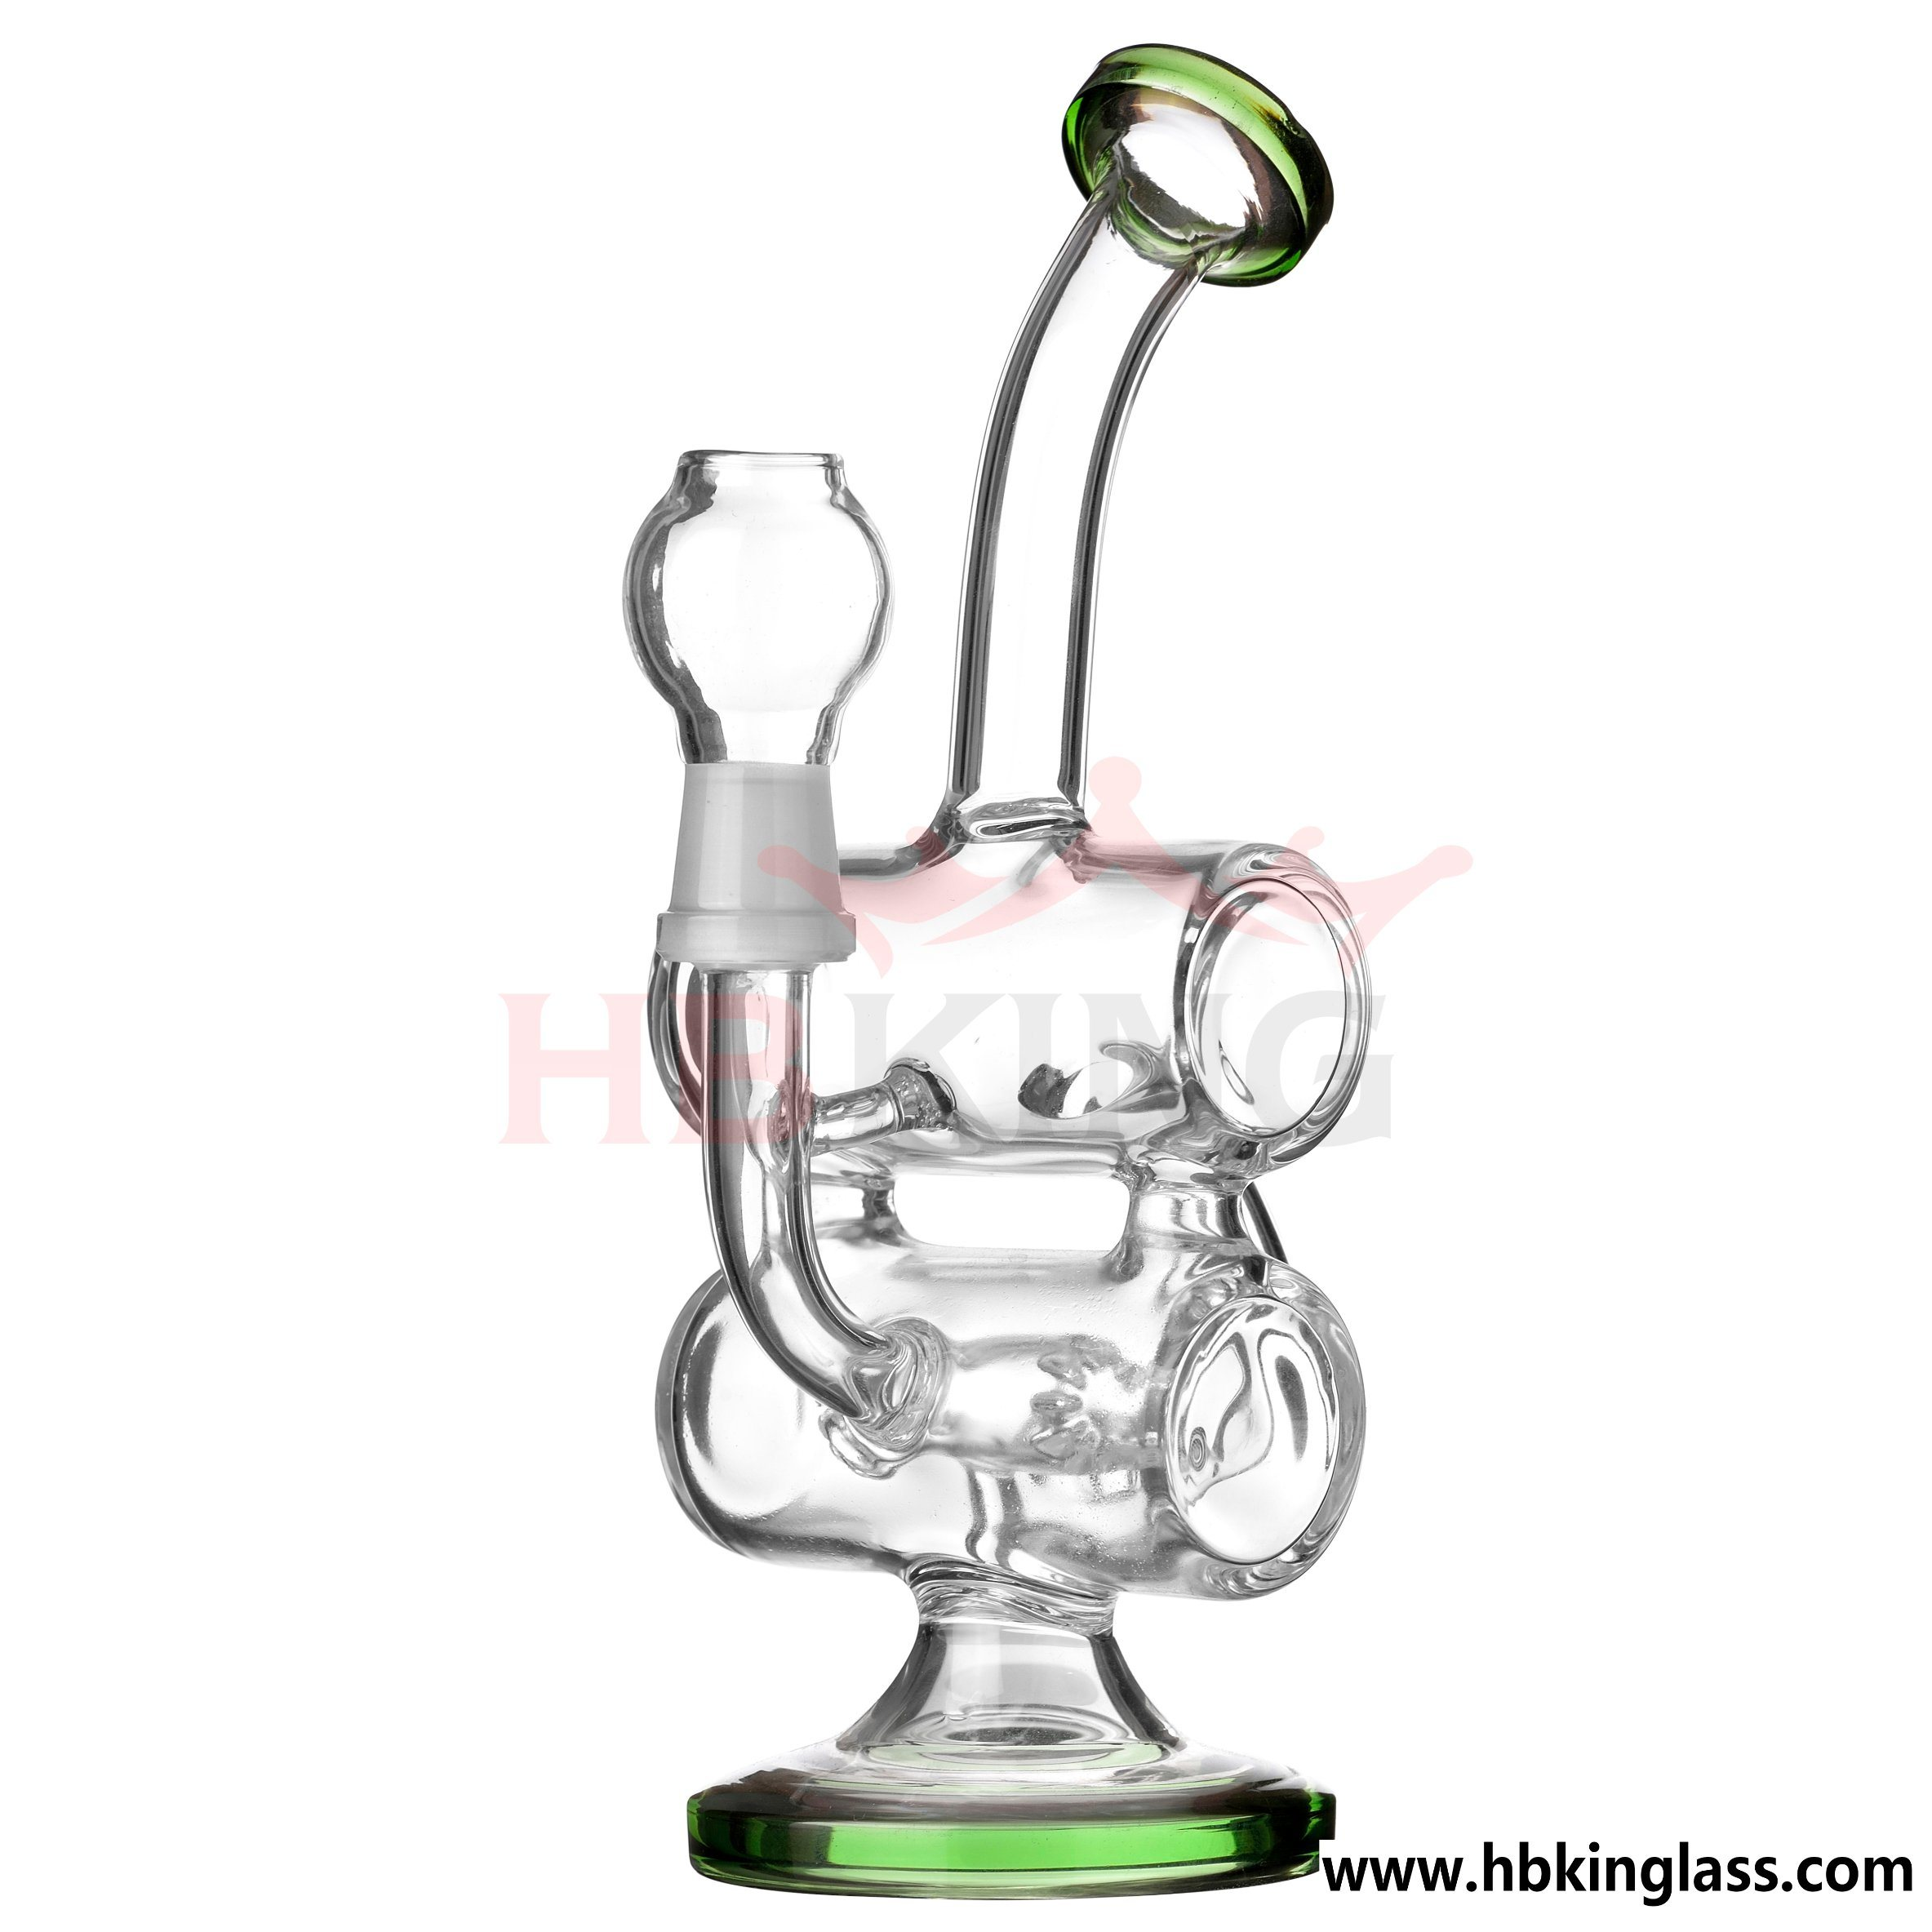 9 Inches Double Chamber Glass Recycler Bubbler with Drum Diffuser